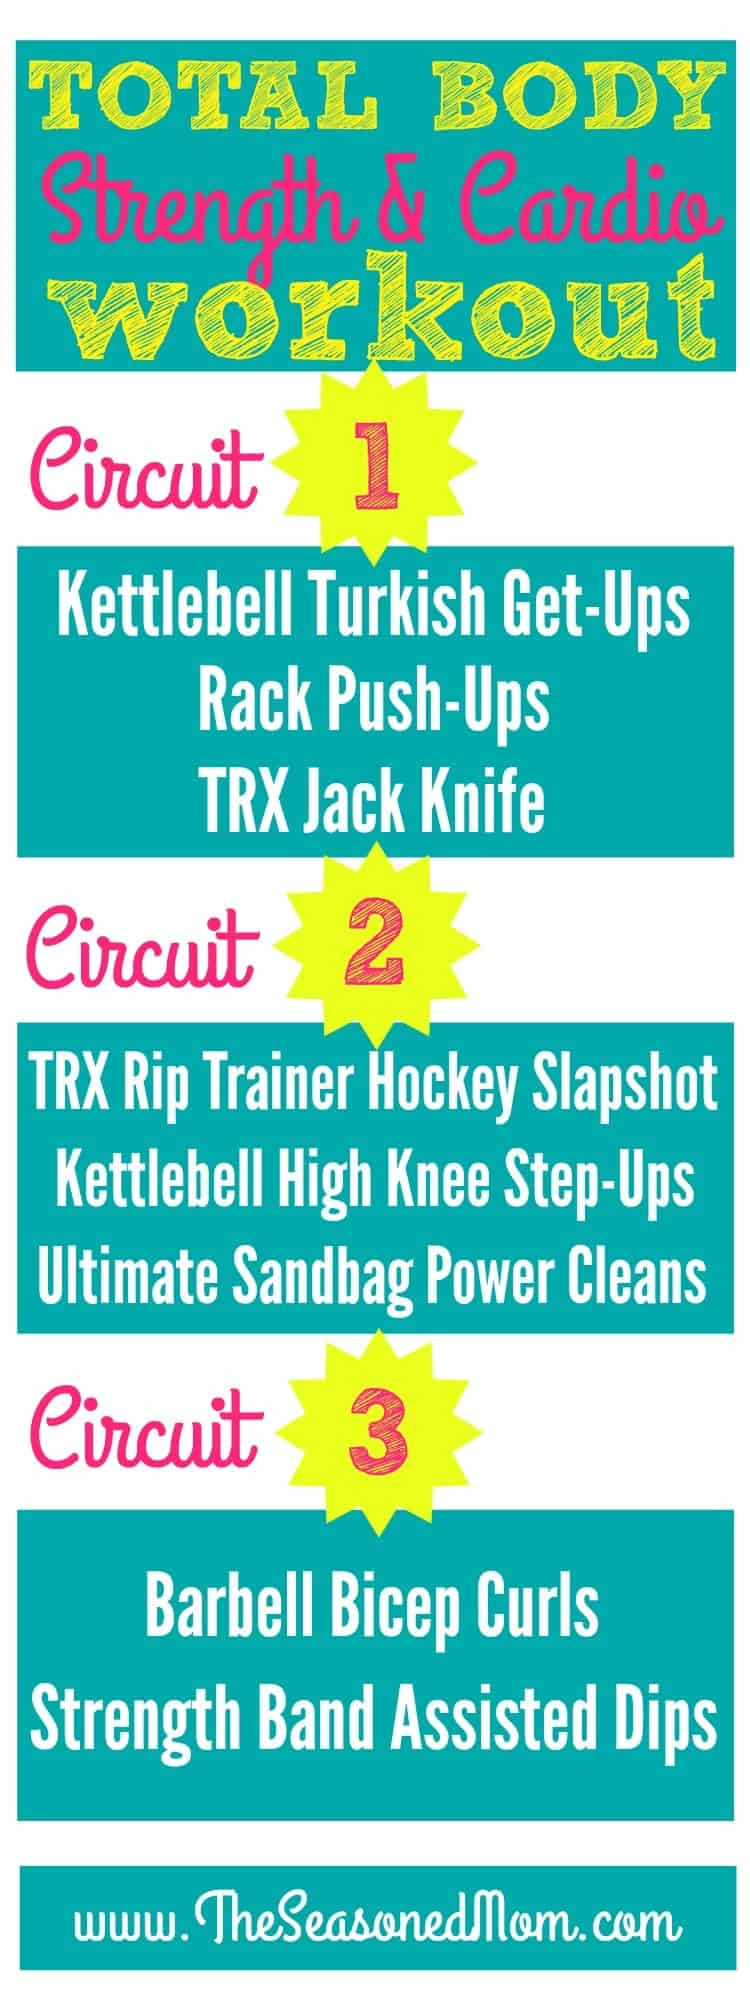 Total Body Strength and Cardio Circuit Workout